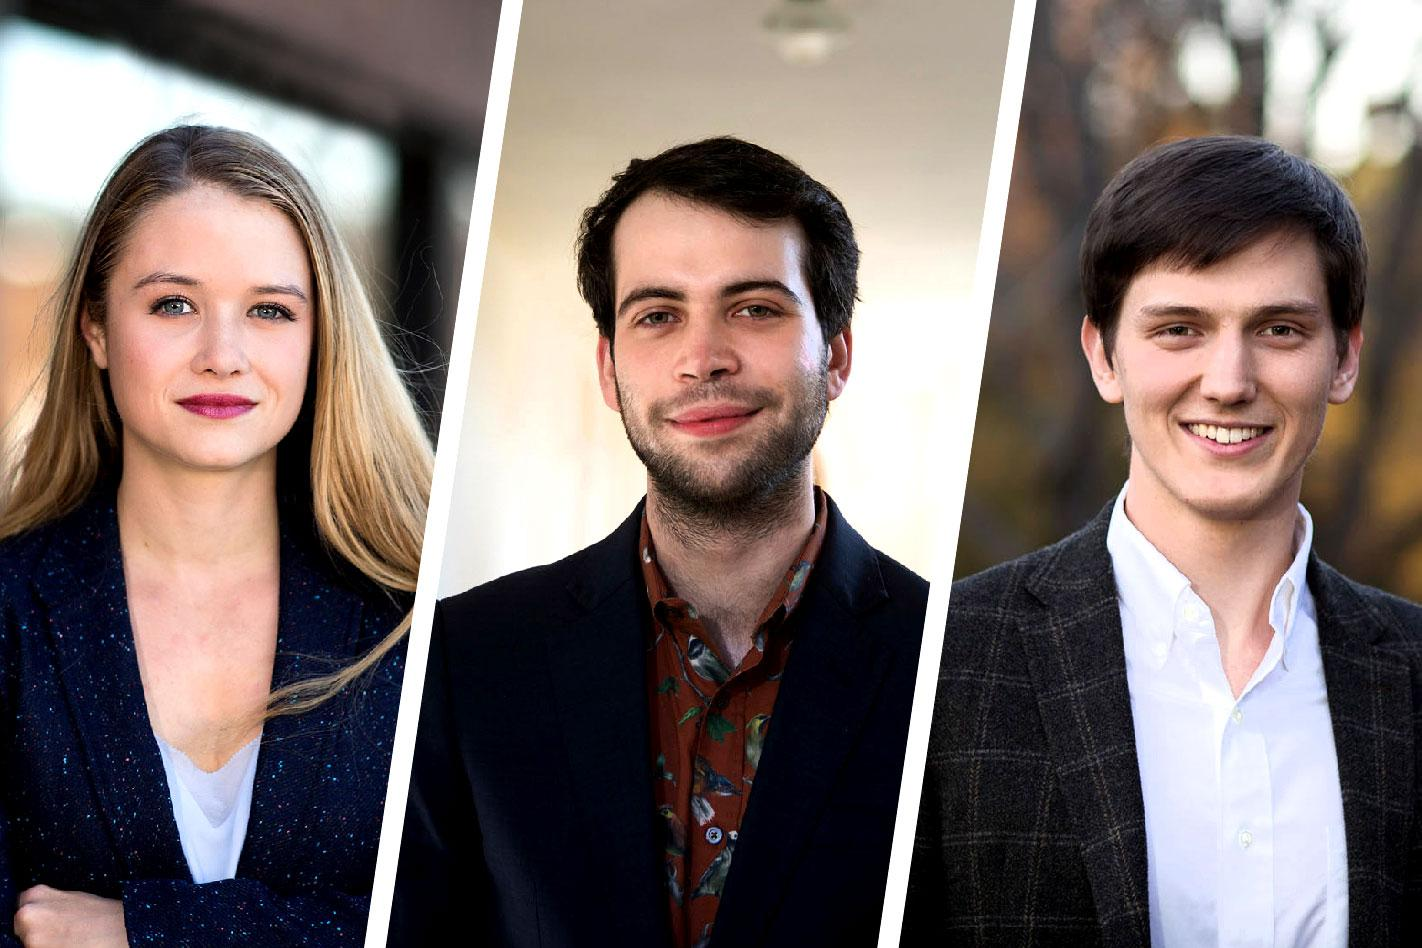 From left, Sarah Koch, Abraham Axler and William Henagan each earned Marshall Scholarships to pursue graduate study in the United Kingdom. (Photos by Dan Addison, University Communications)